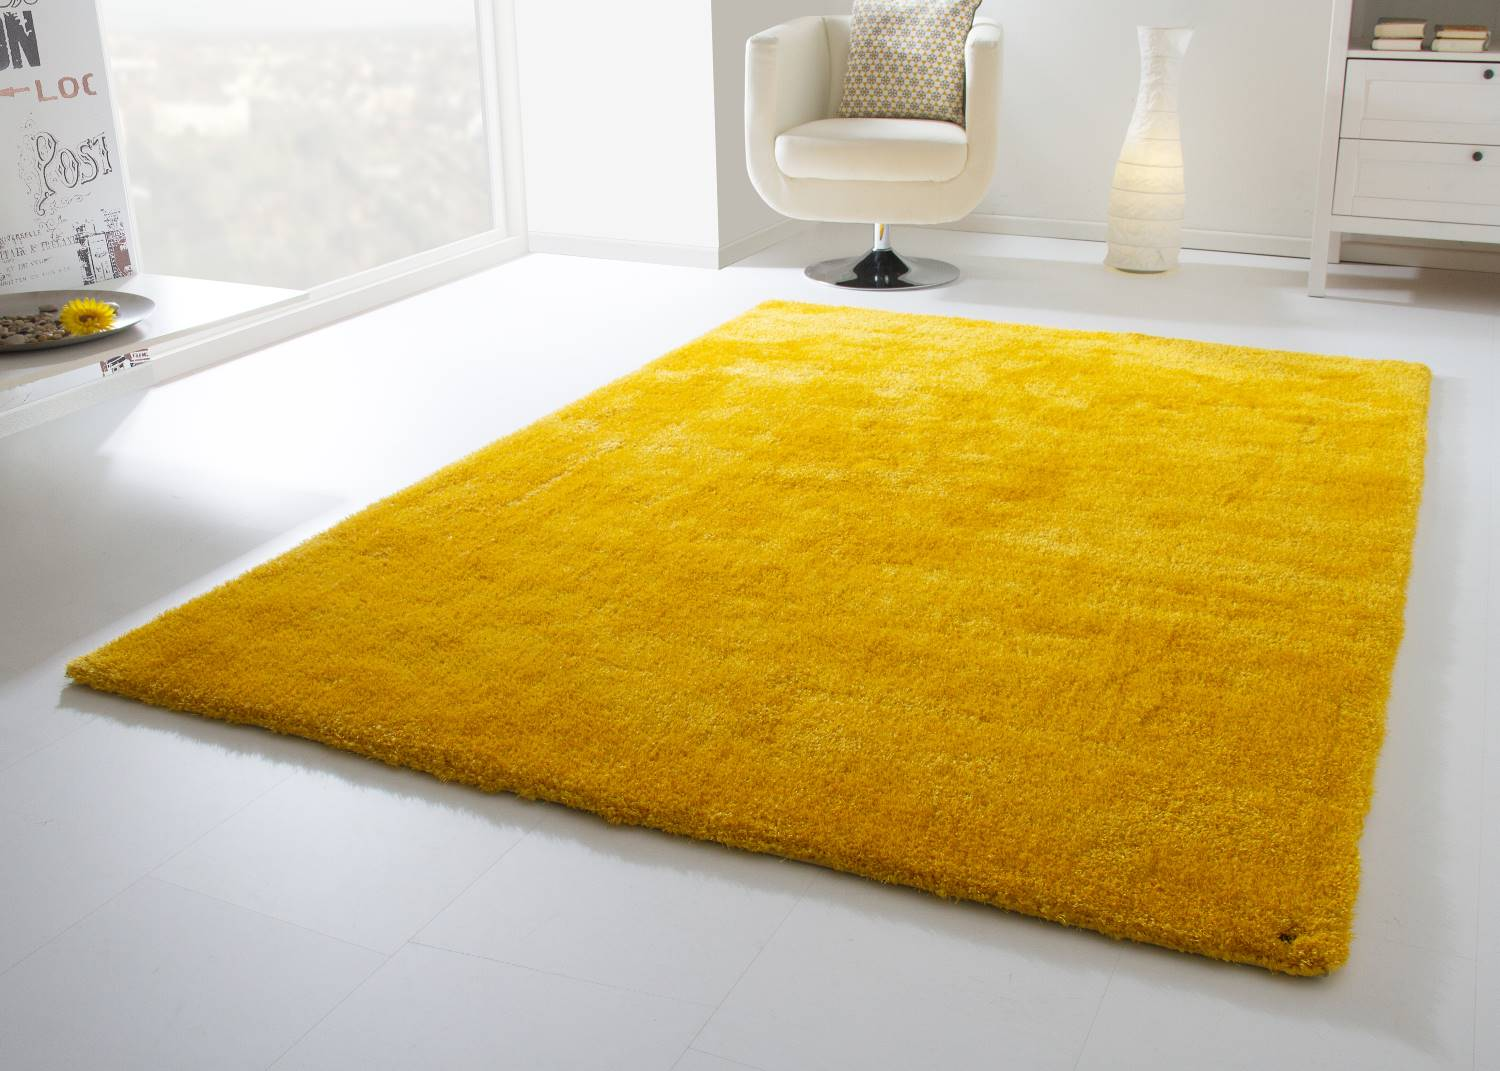 Teppiche Orange Suchen Hochflor Teppich Tom Tailor Soft Global Carpet